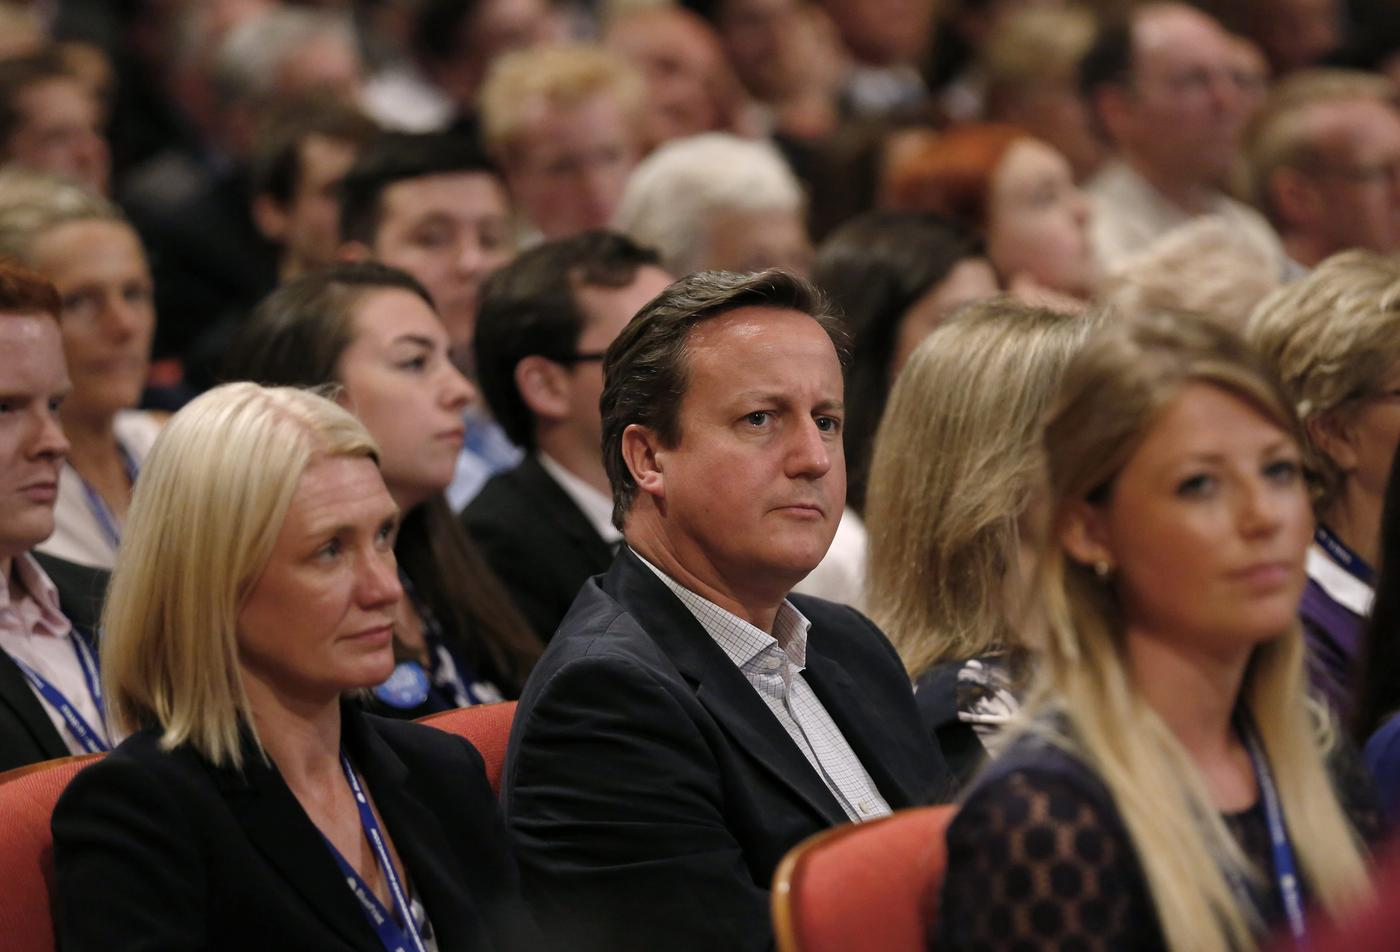 Conservative Party Conference 2014: 7 reasons the Tories are in trouble